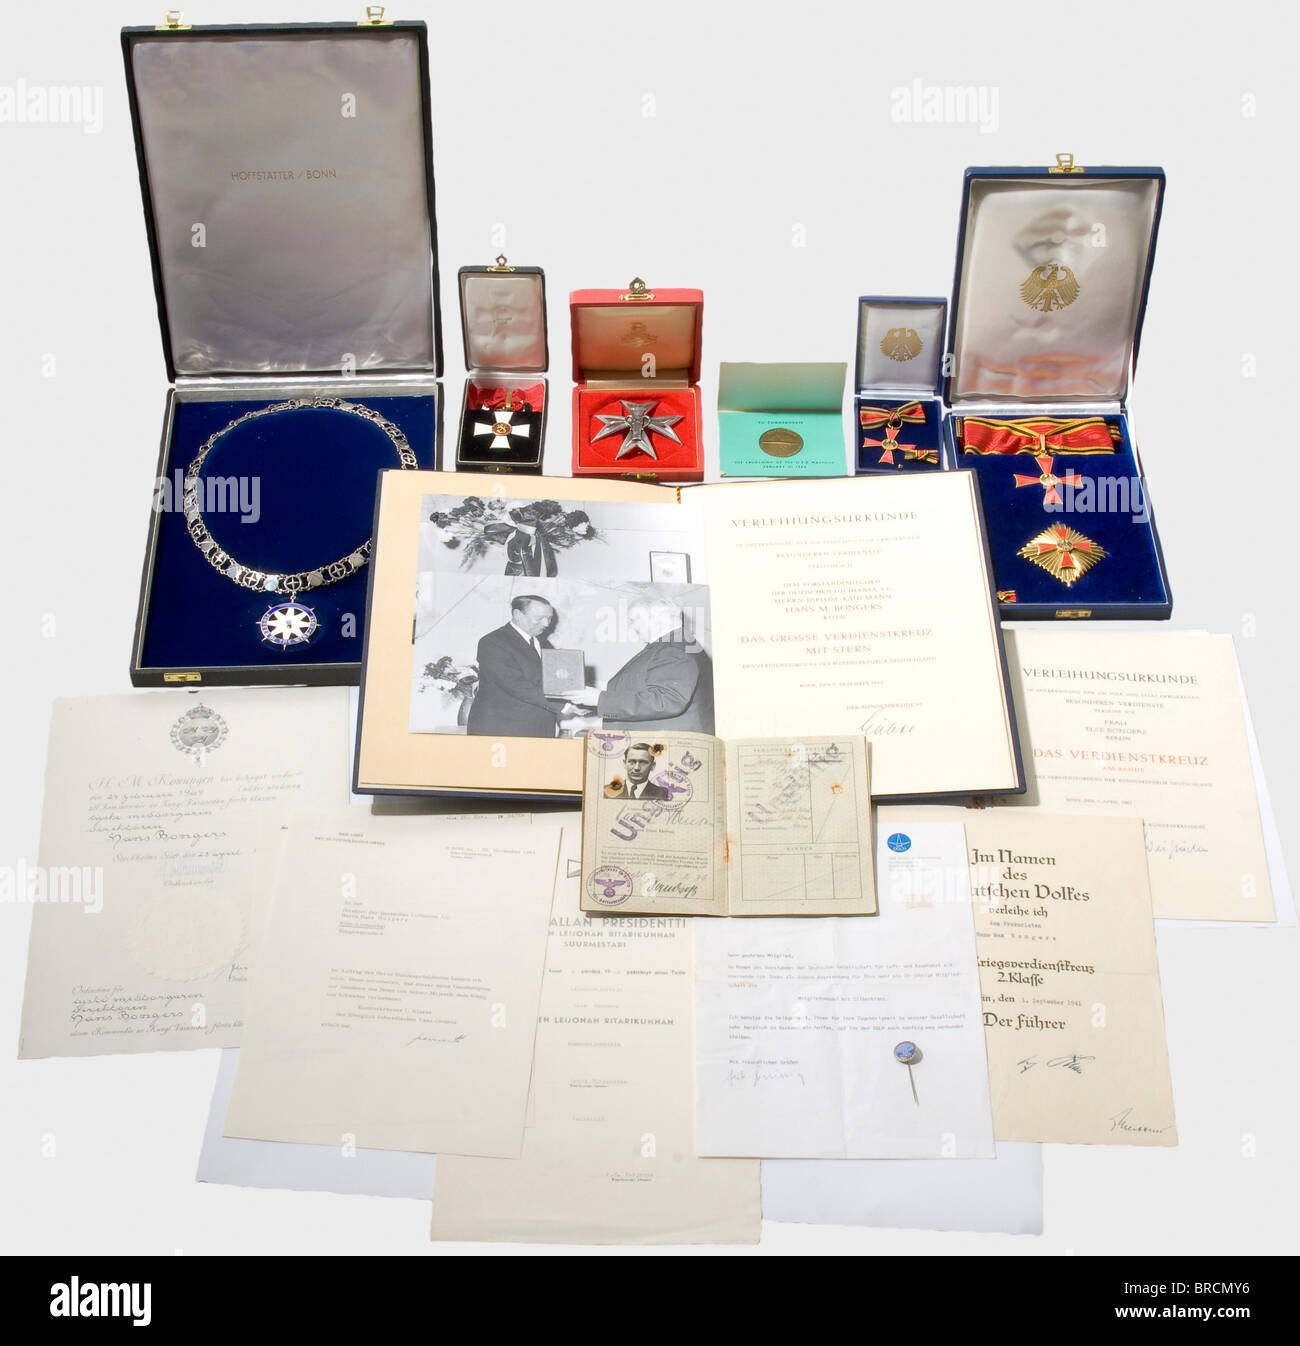 Hans M. Bongers, a pioneer of German civil aviation (1898 - 1981), awards and documents Passport, 1939 with numerous - Stock Image